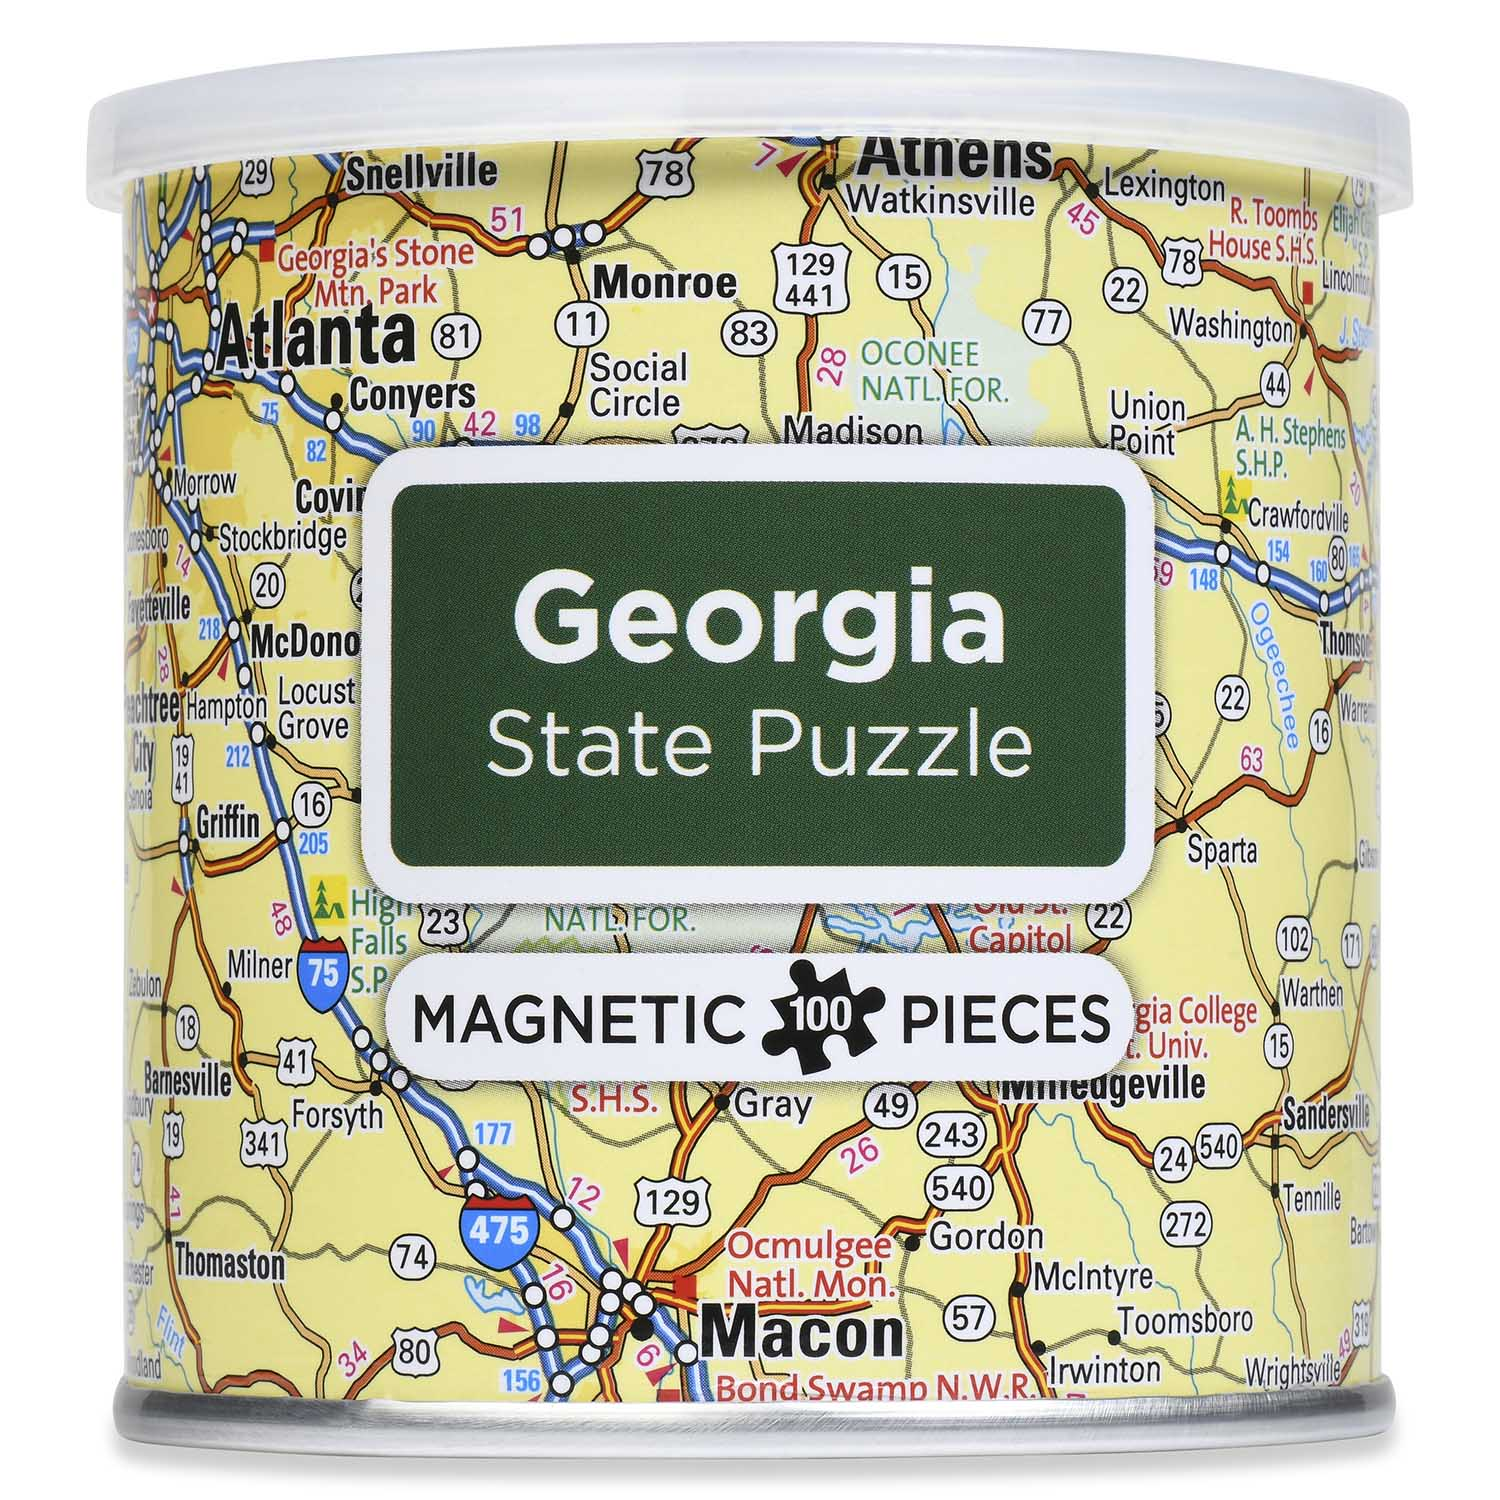 City Magnetic Puzzle Georgia Cities Jigsaw Puzzle